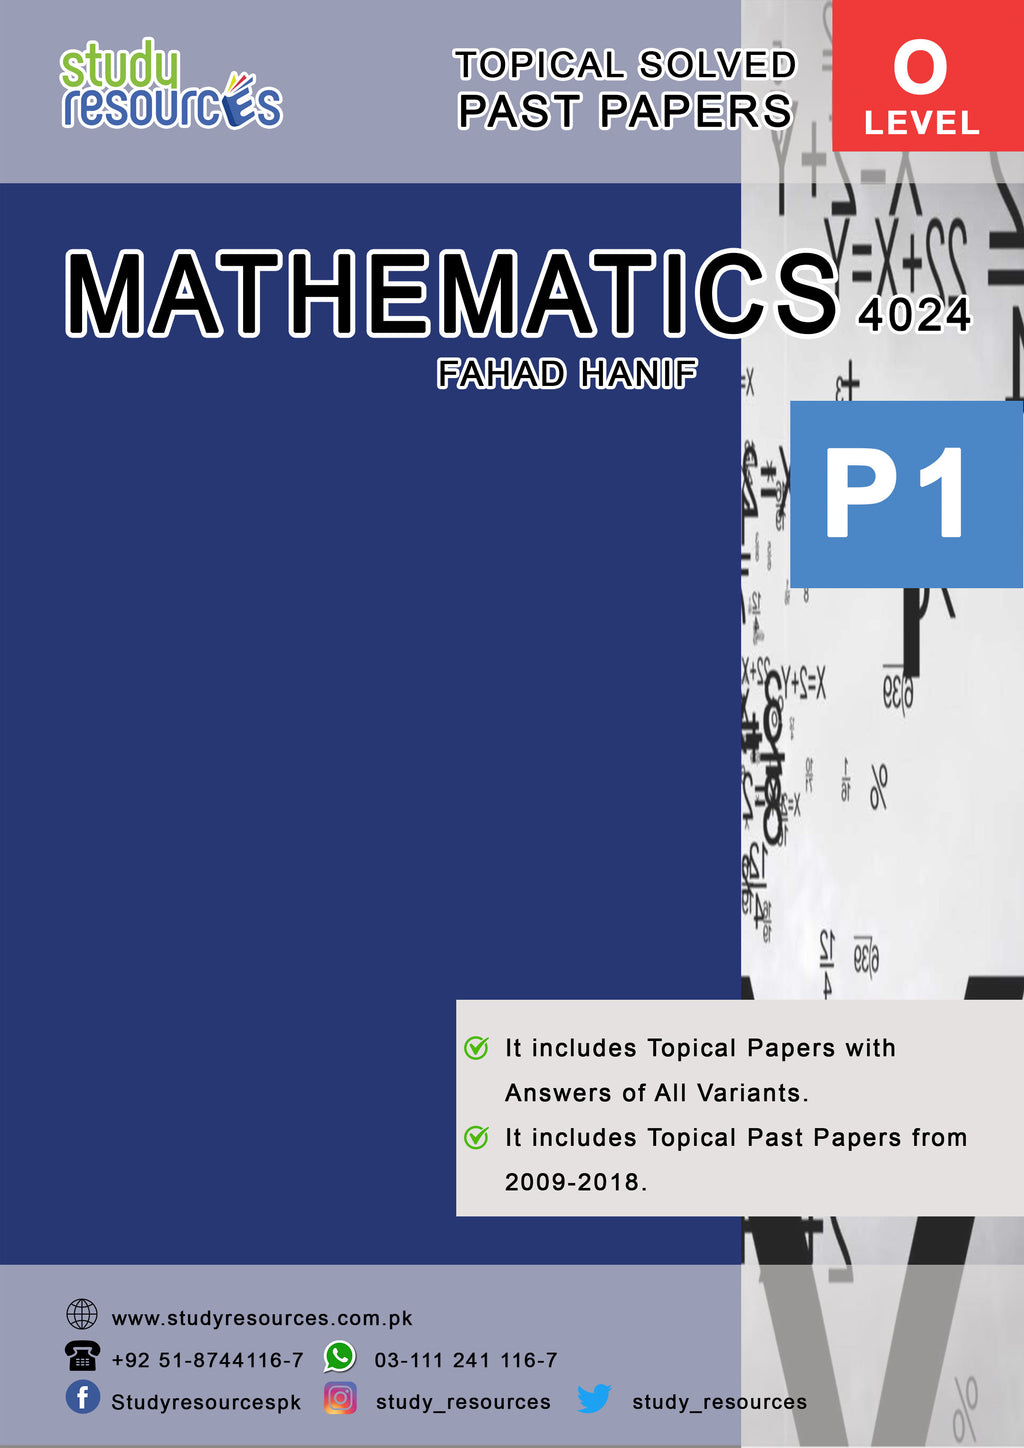 Cambridge O-Level Mathematics (4024) P-1 Topical Past Papers (2009-2018) by Fahad Hanif